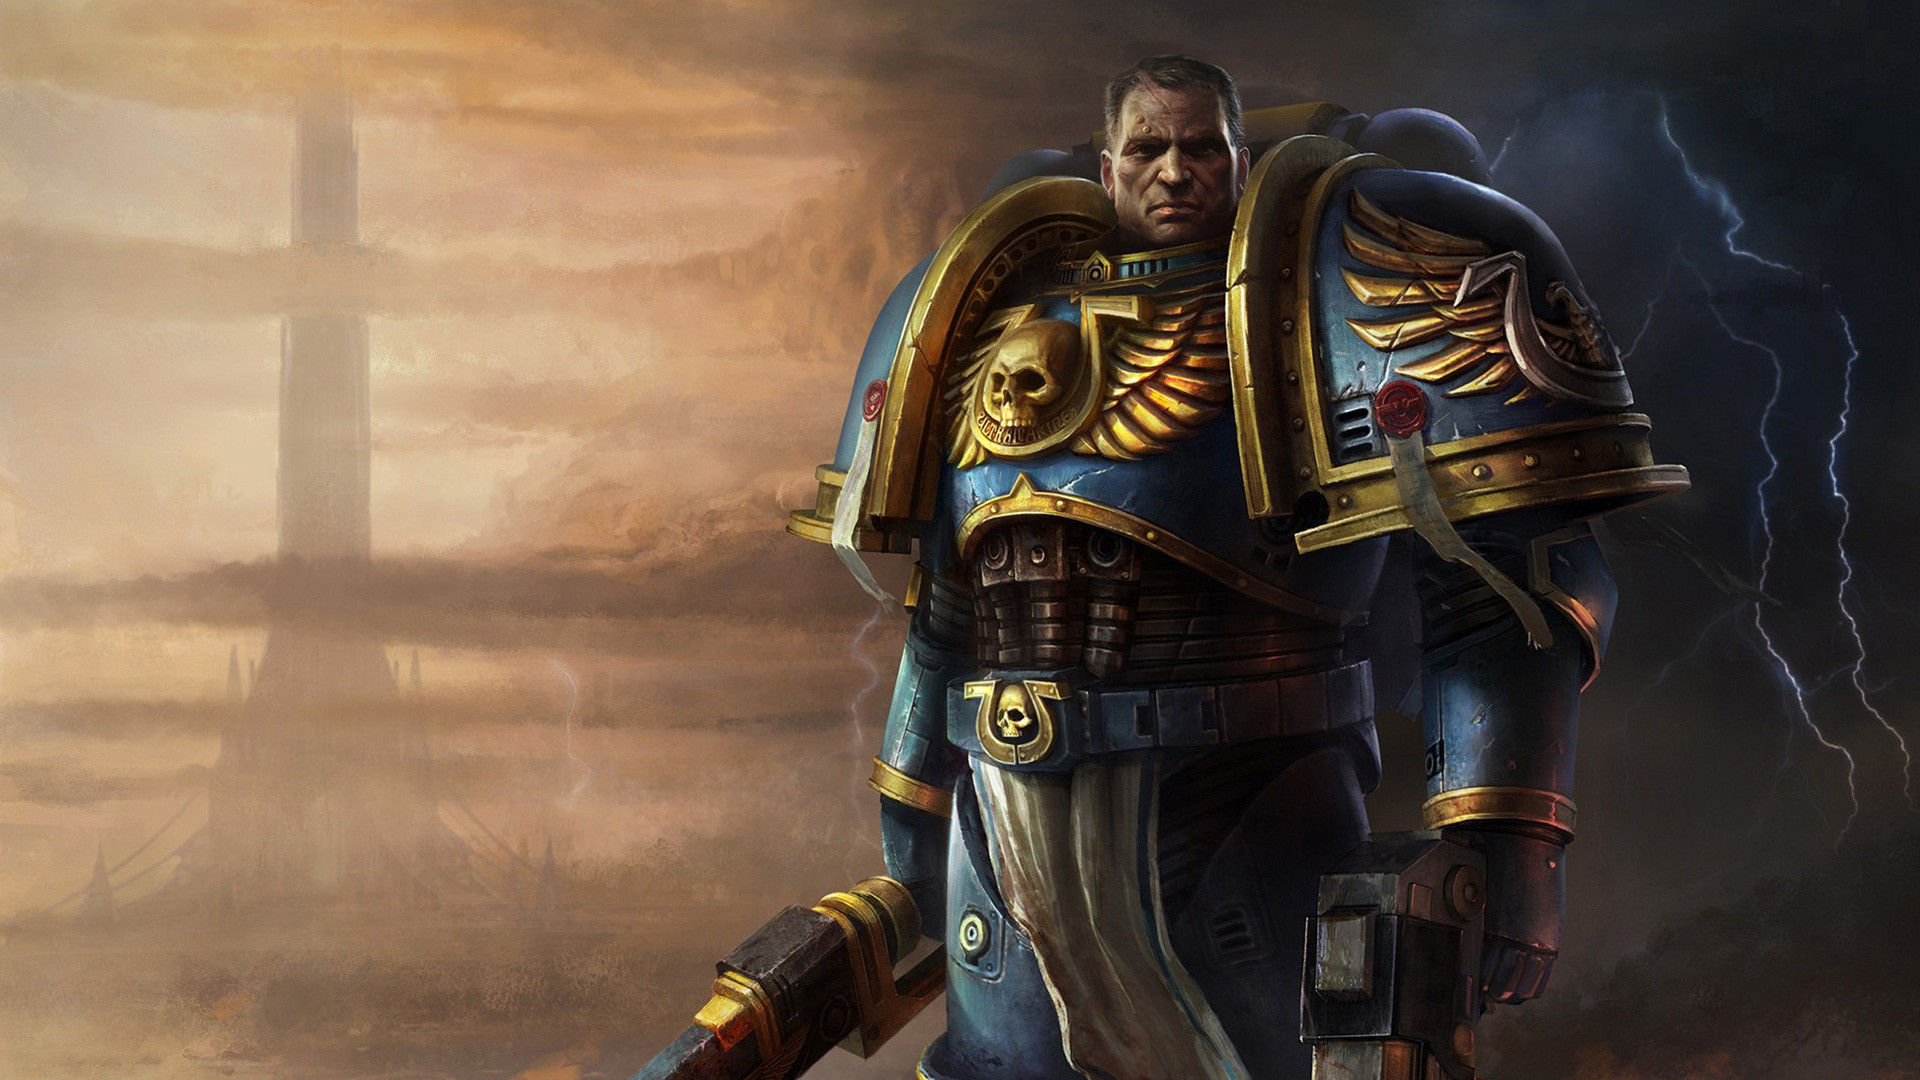 Res: 1920x1080, ... Space Marine wallpaper 3. download wallpaper